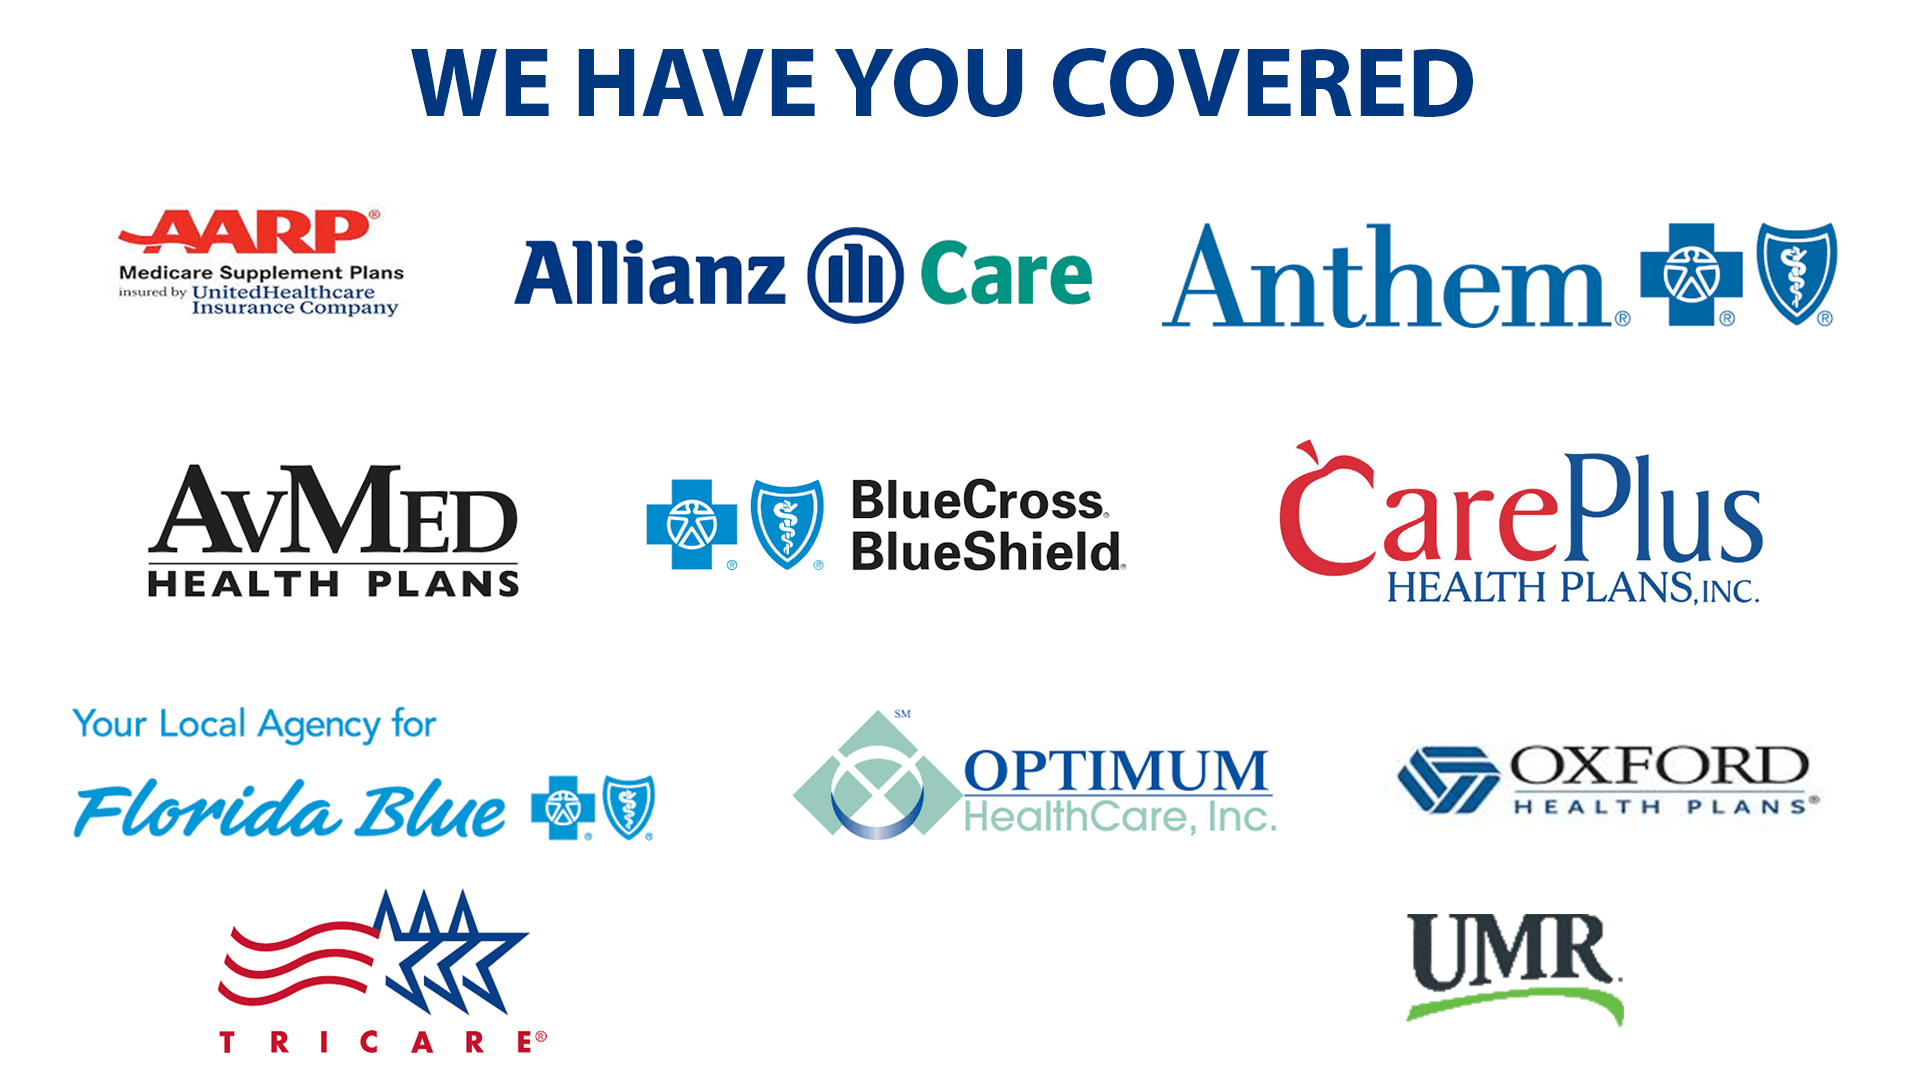 StatMed Insurance Carriers